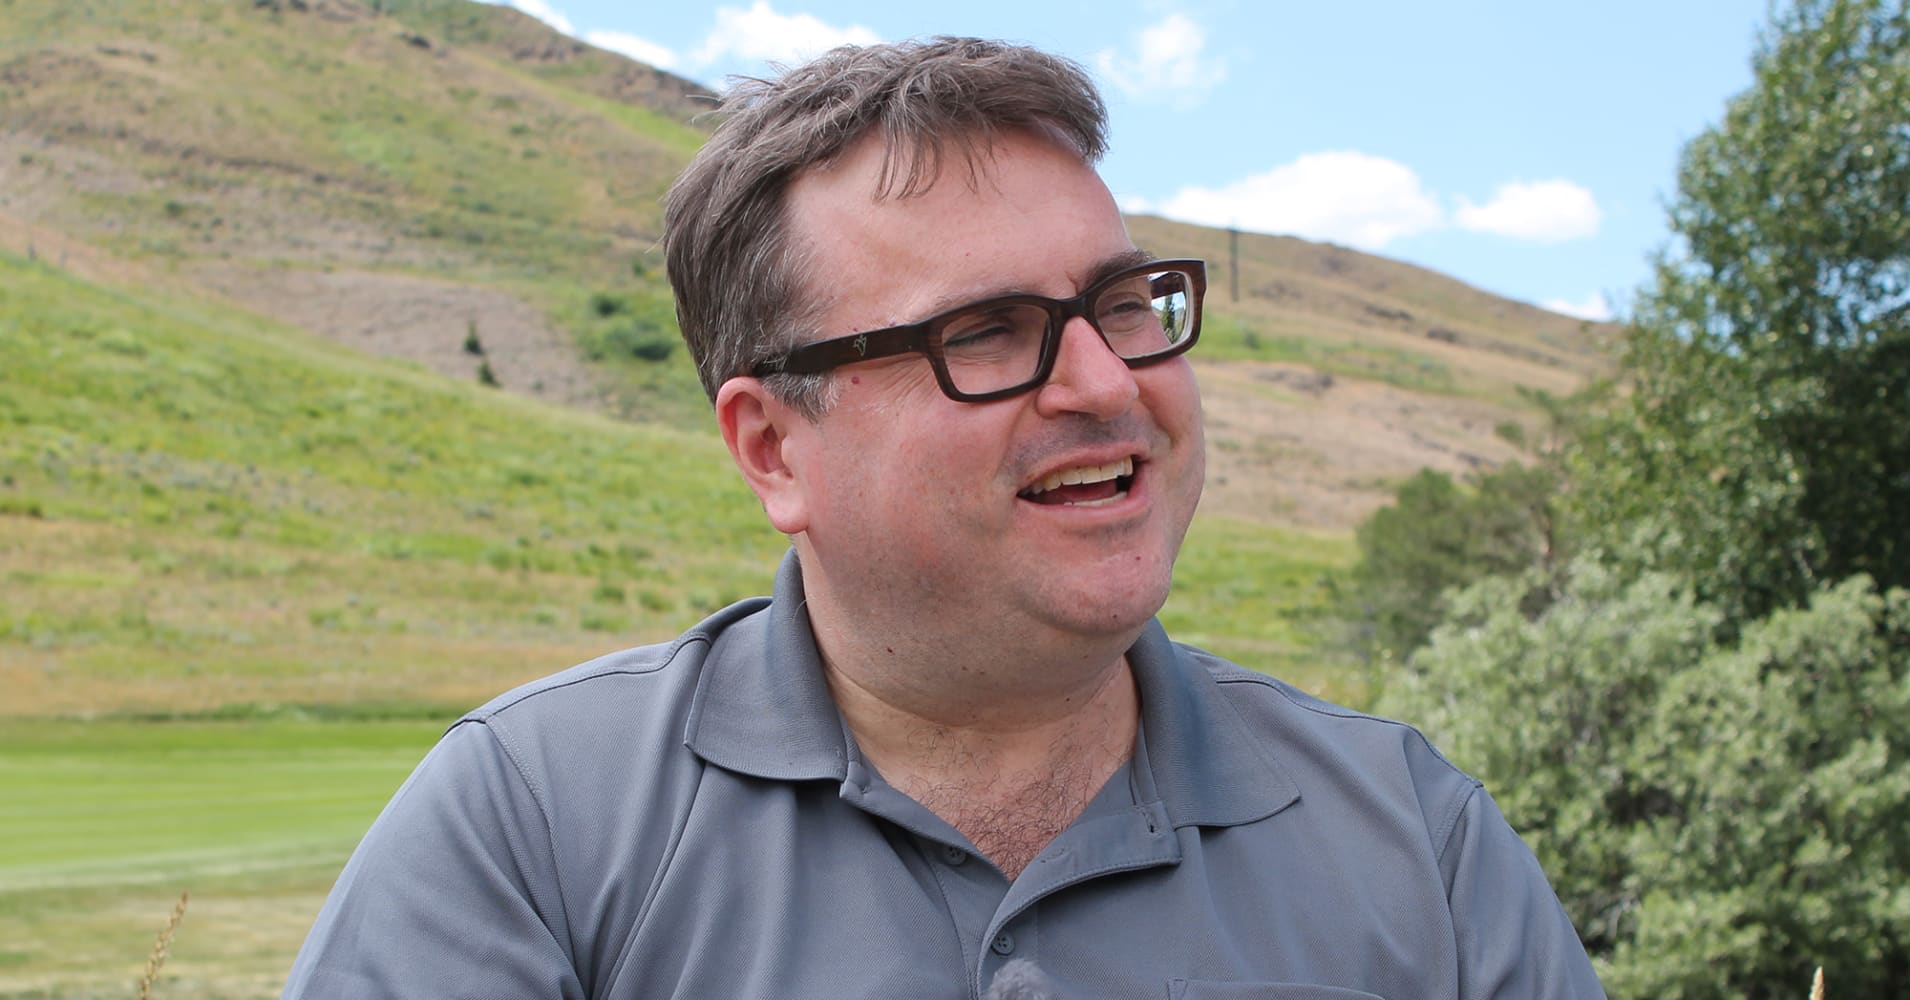 LinkedIn Co-founder Reid Hoffman Joined Microsoft's Board